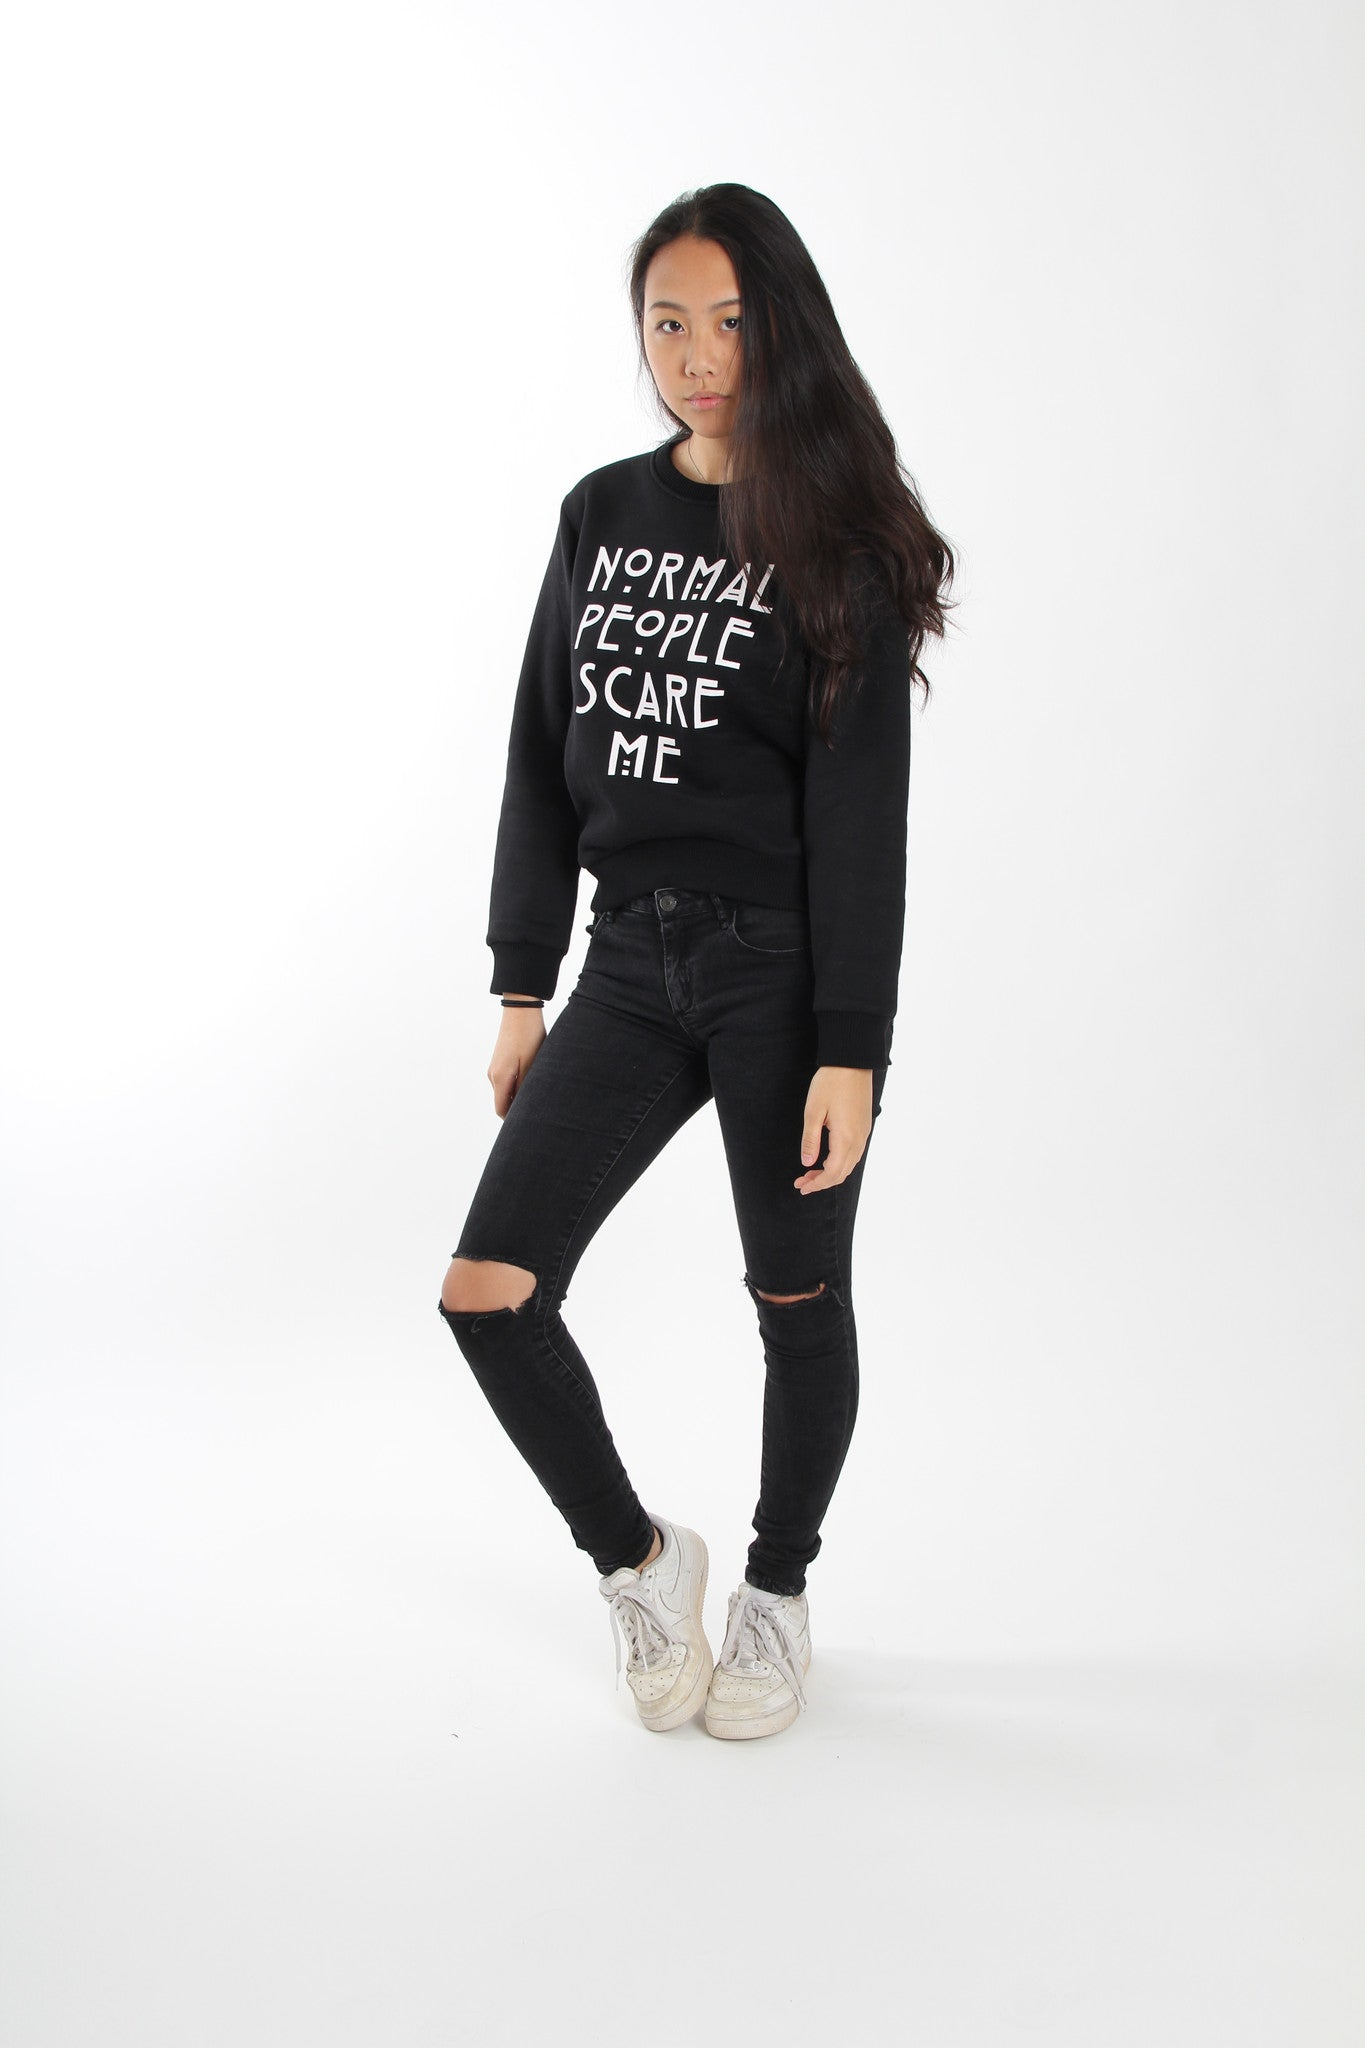 Normal People Scare Me Crewneck Sweater